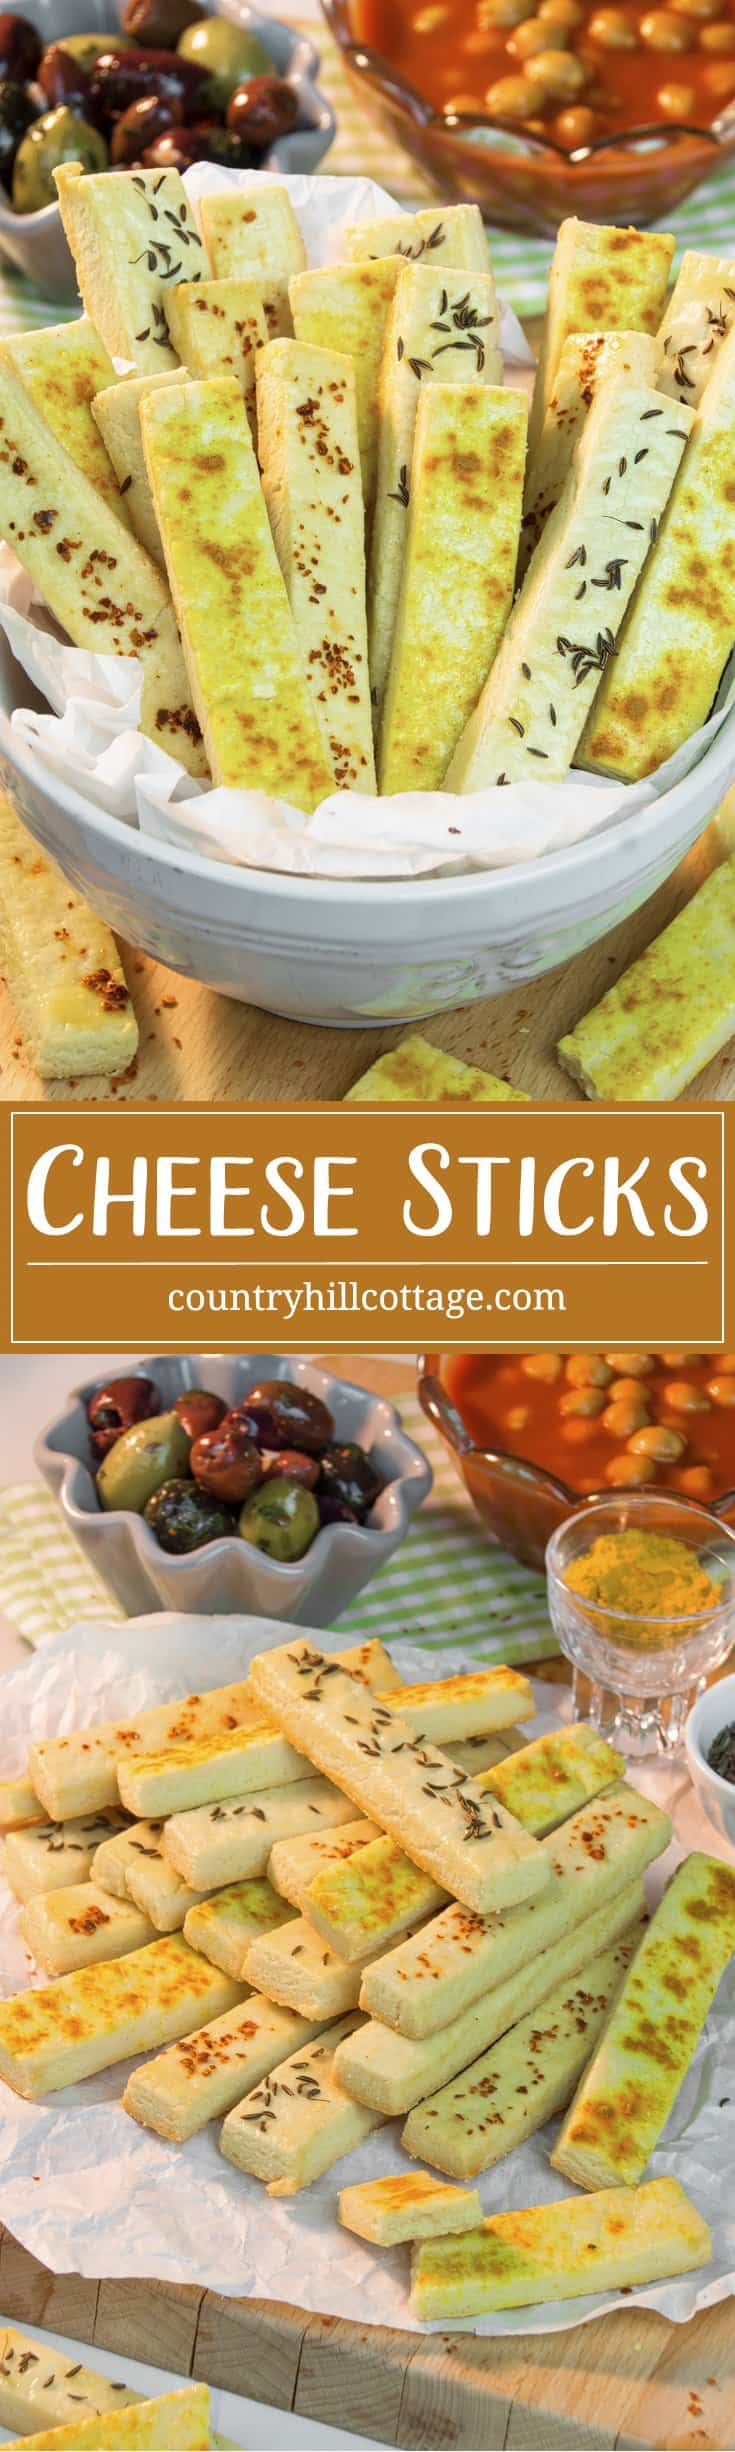 Our party-perfect cheese sticks taste flaky and buttery and couldn't be simpler. They are a delicious snack, go great with dips or can be served as an appetiser. We made the cheese stick with mature cheddar and used different toppings to boost the flavour. #cheddar #snack #appetiser #recipe | countryhillcottage.com